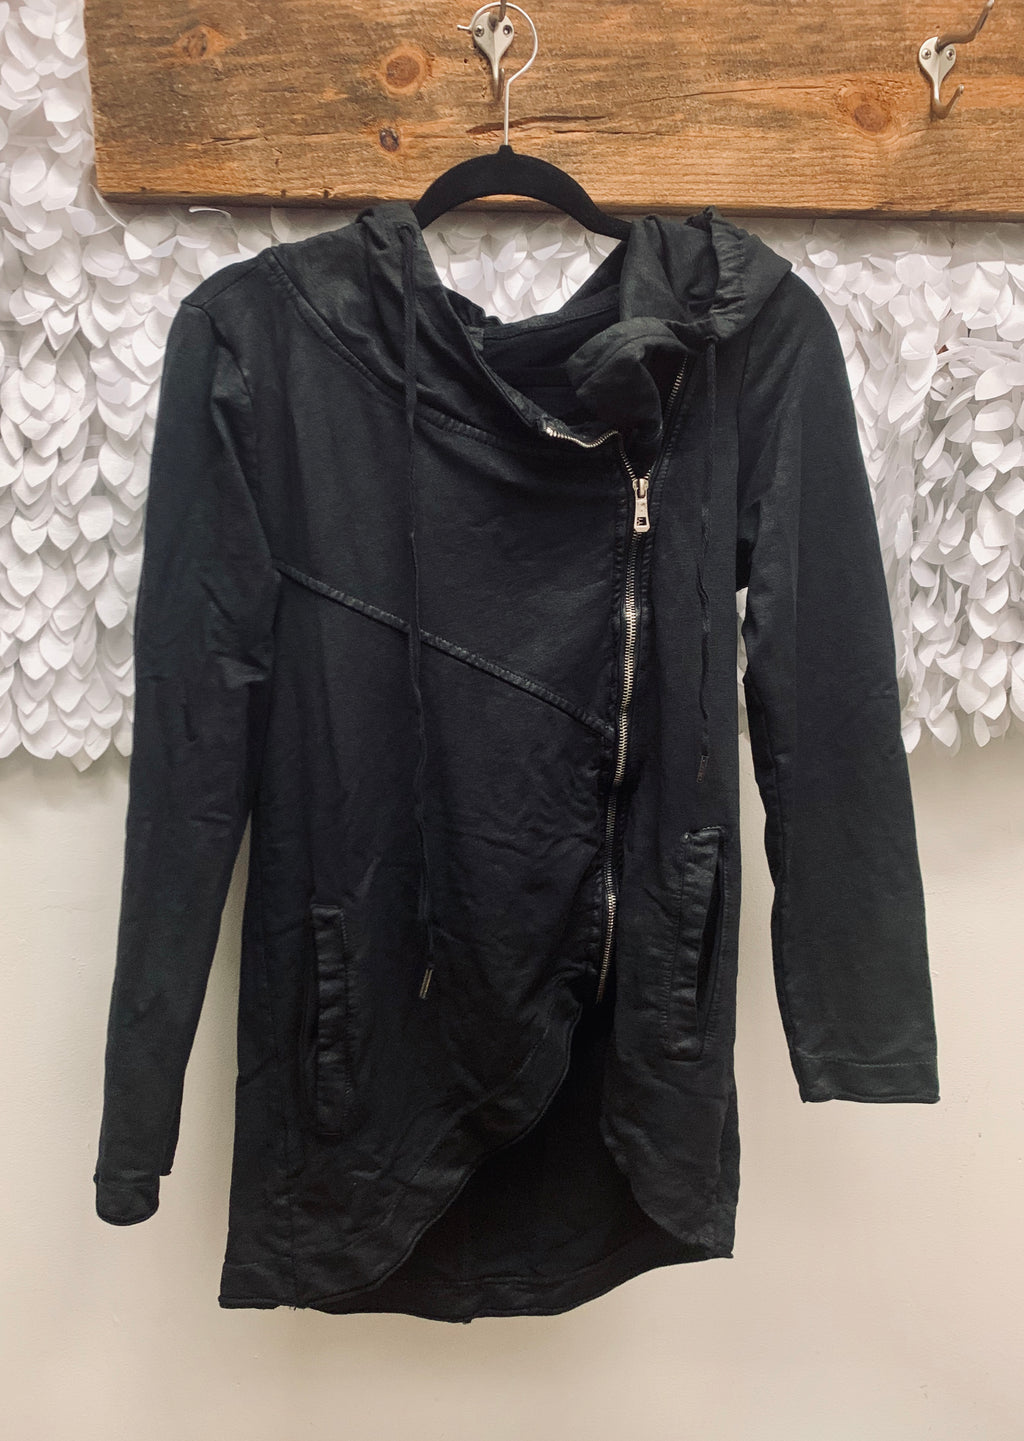 Zuma Beach Black Jacket